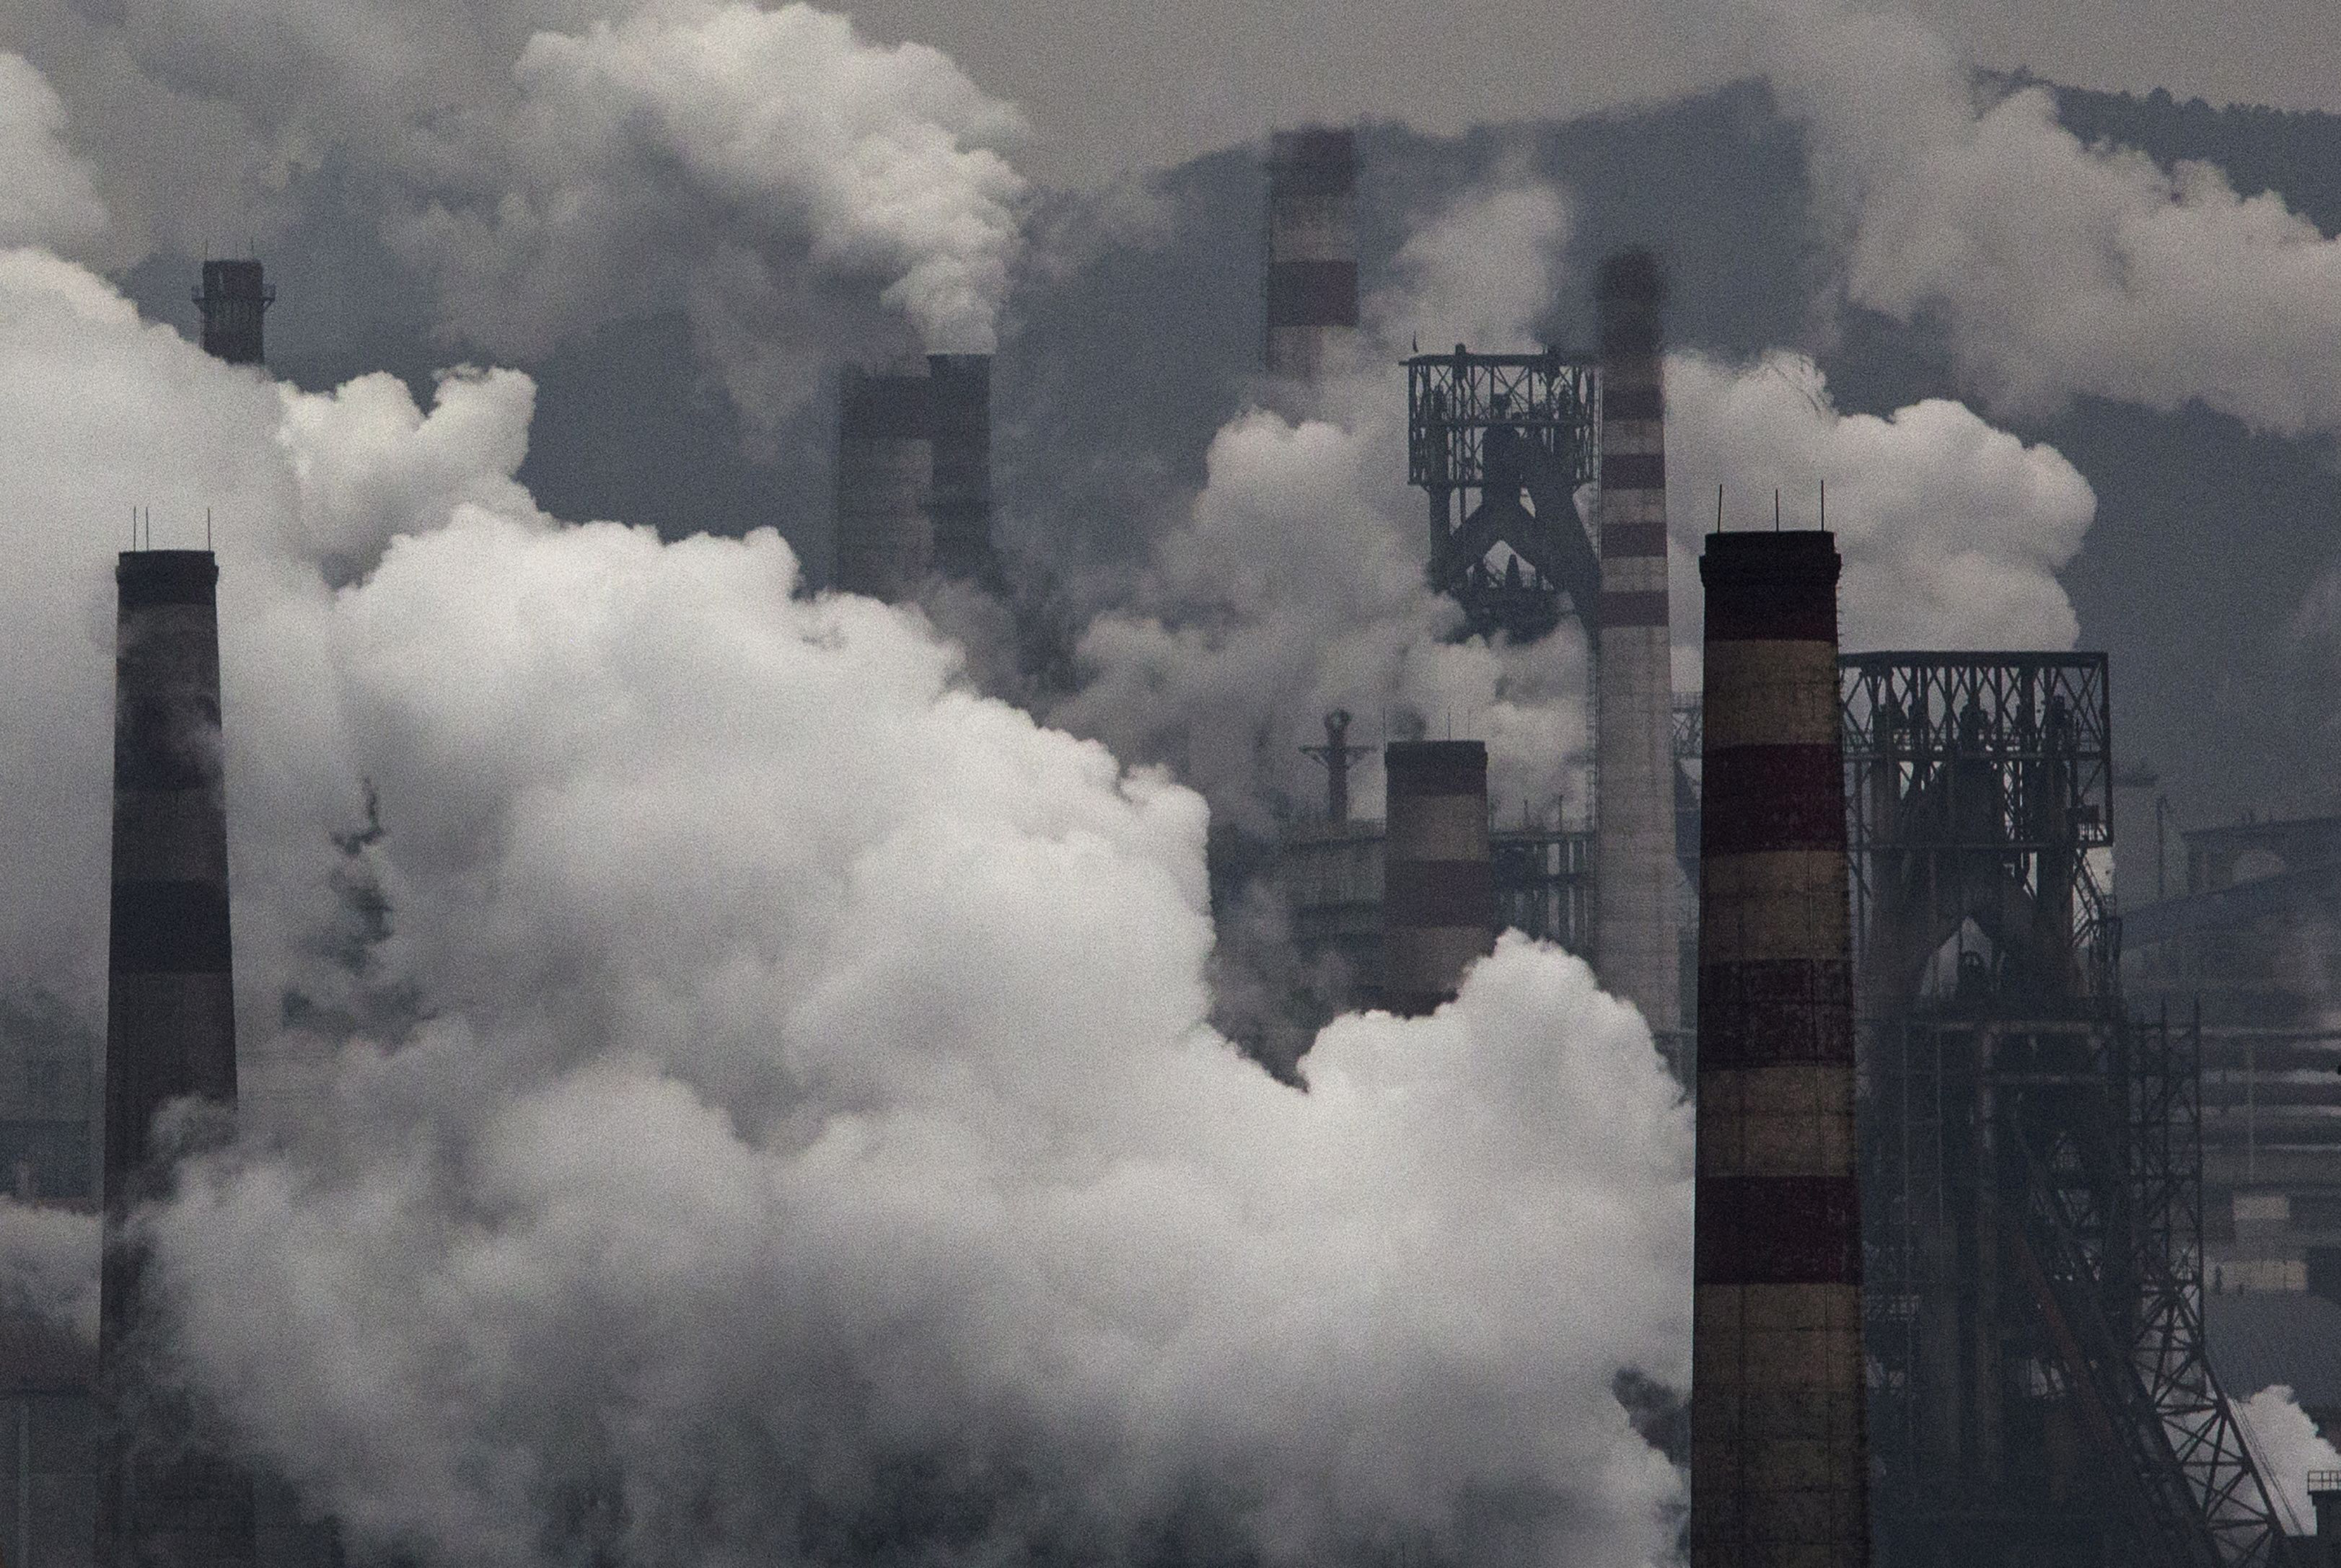 Smoke billows from smokestacks and a coal-fired generator at a steel factory on Nov. 19, 2015, in China's industrial province of Hebei